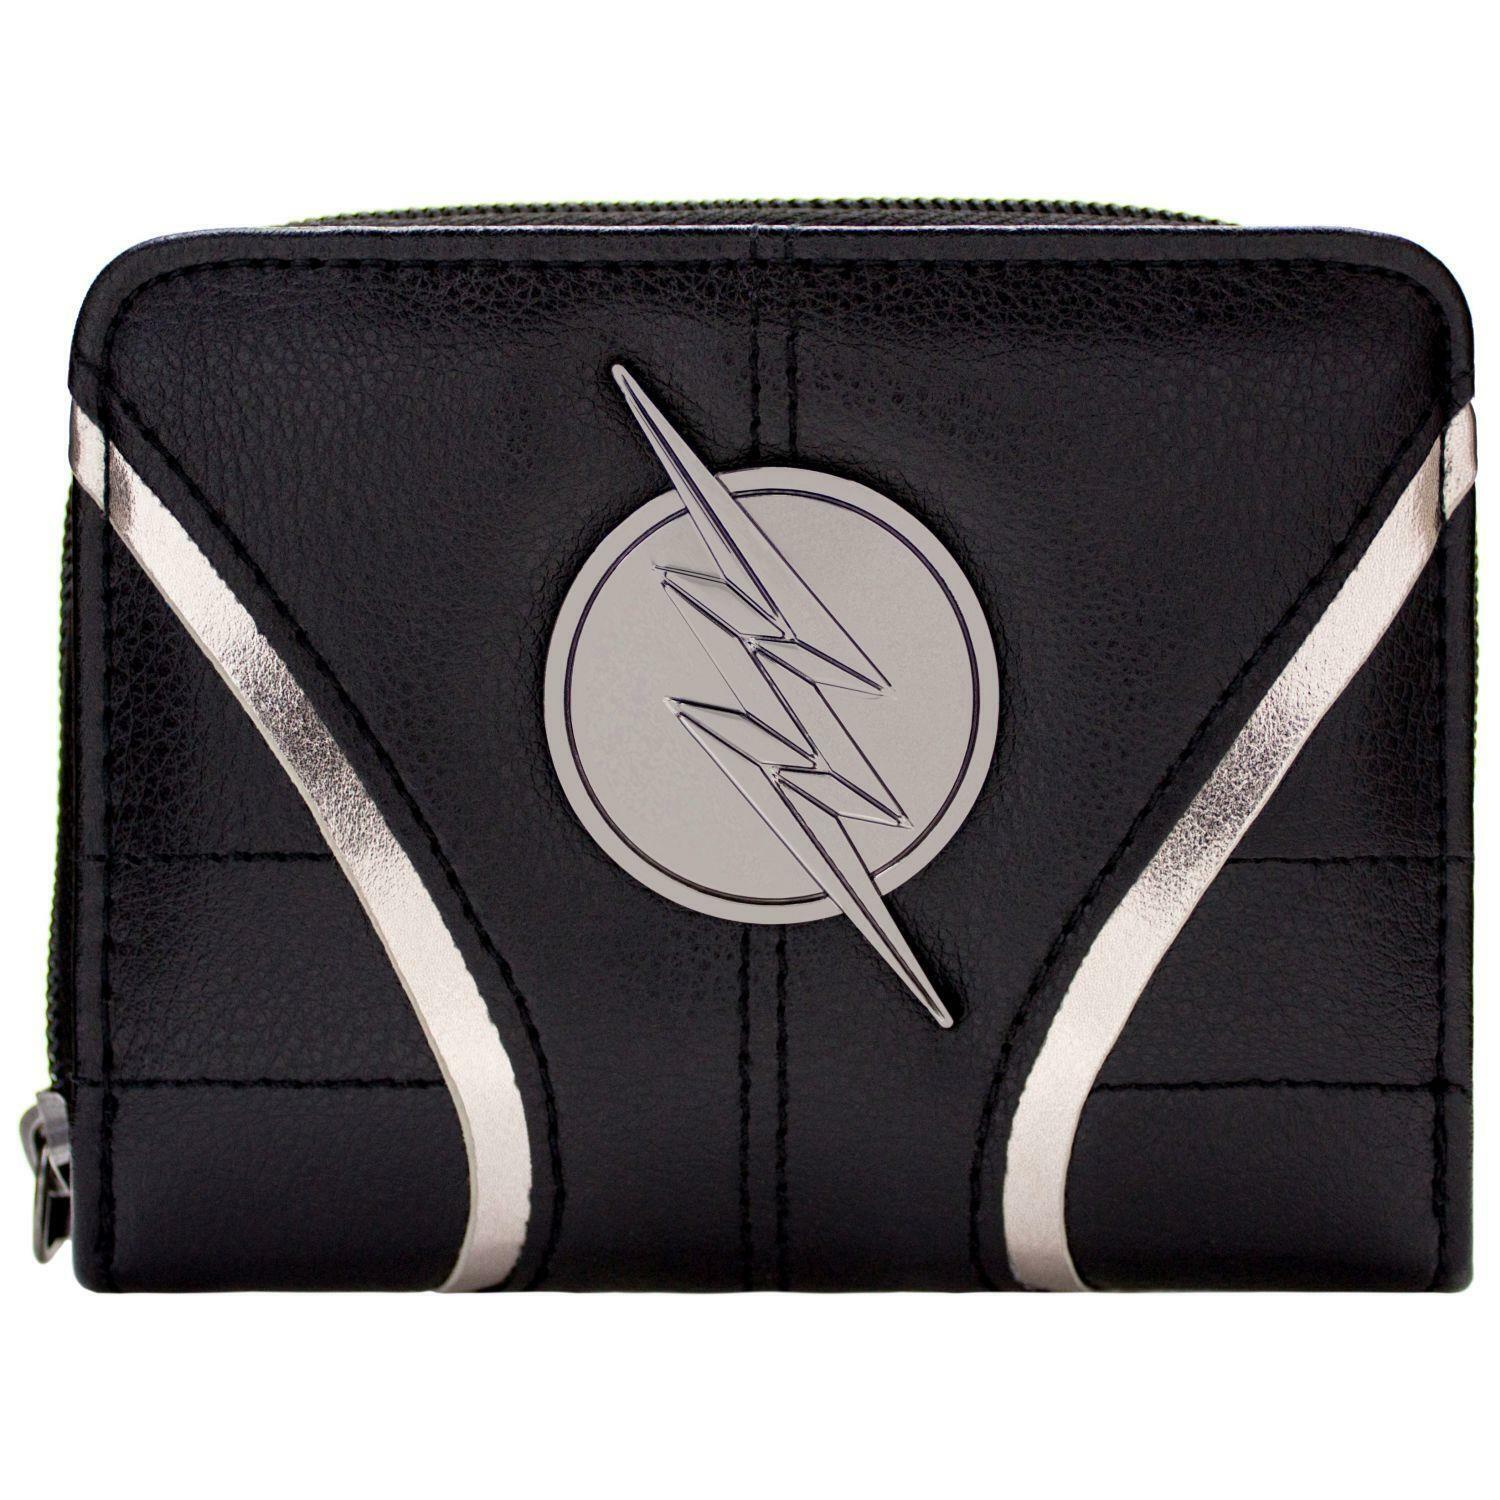 OFFICIAL DC Flash Zoom Suit Up Black Coin & Card Clutch Purse *SECOND*